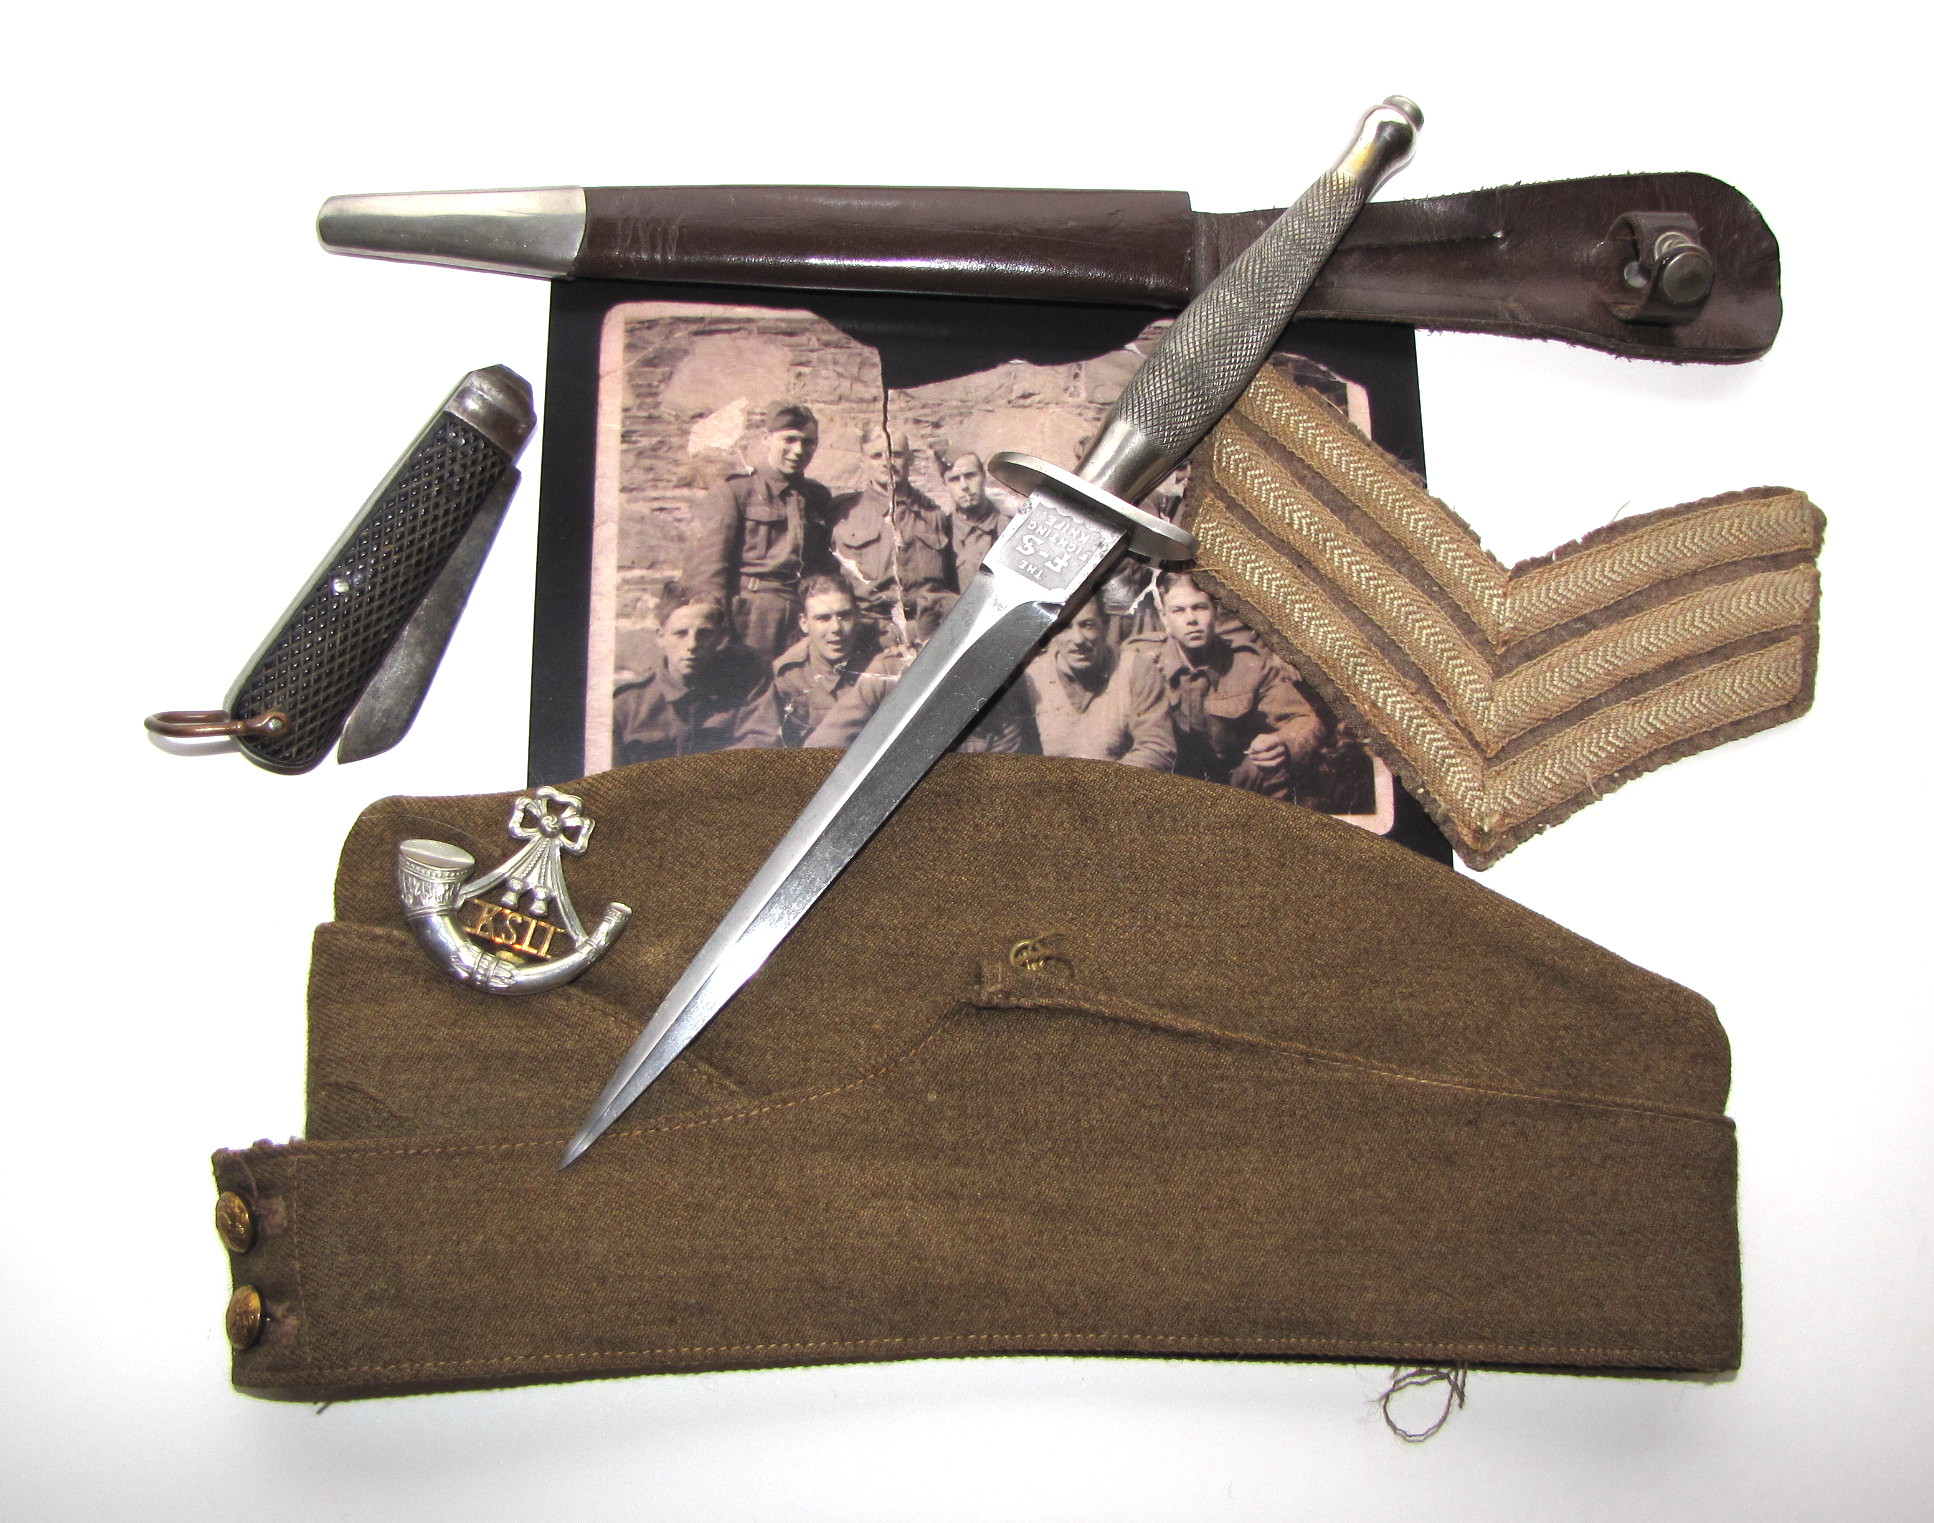 1st pattern FS knife and associated items of Sgt Roberts